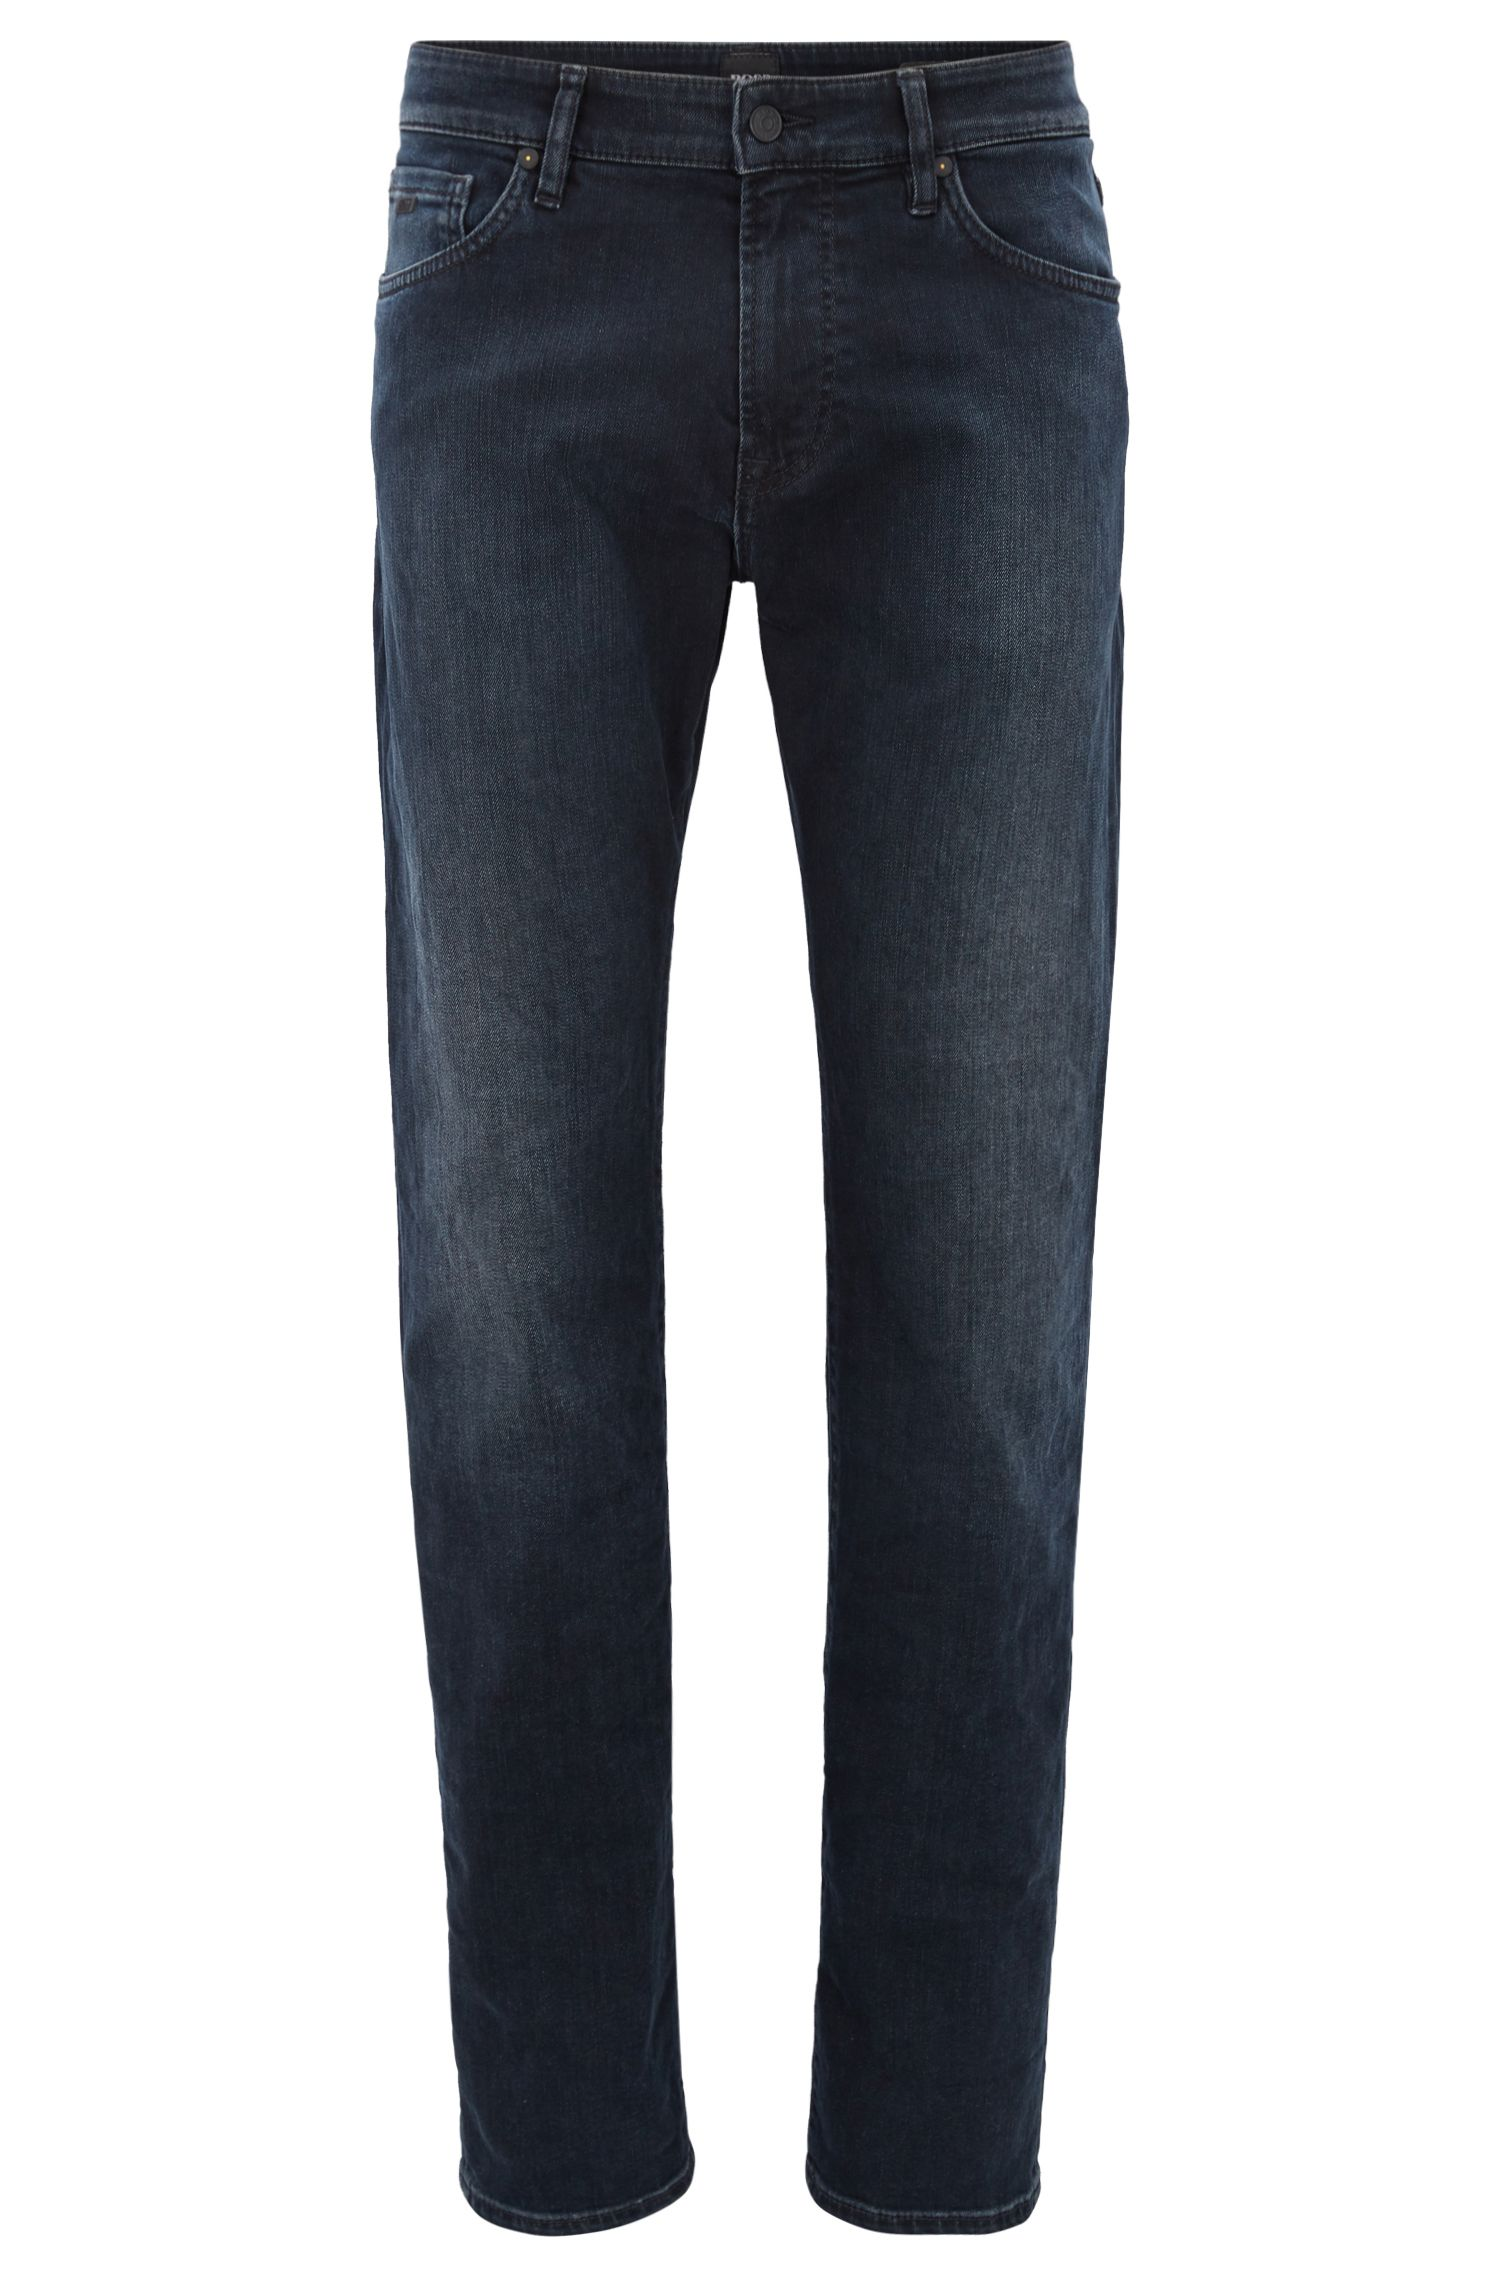 Jeans regular fit in denim elasticizzato sovratinto blu-nero, Blu scuro